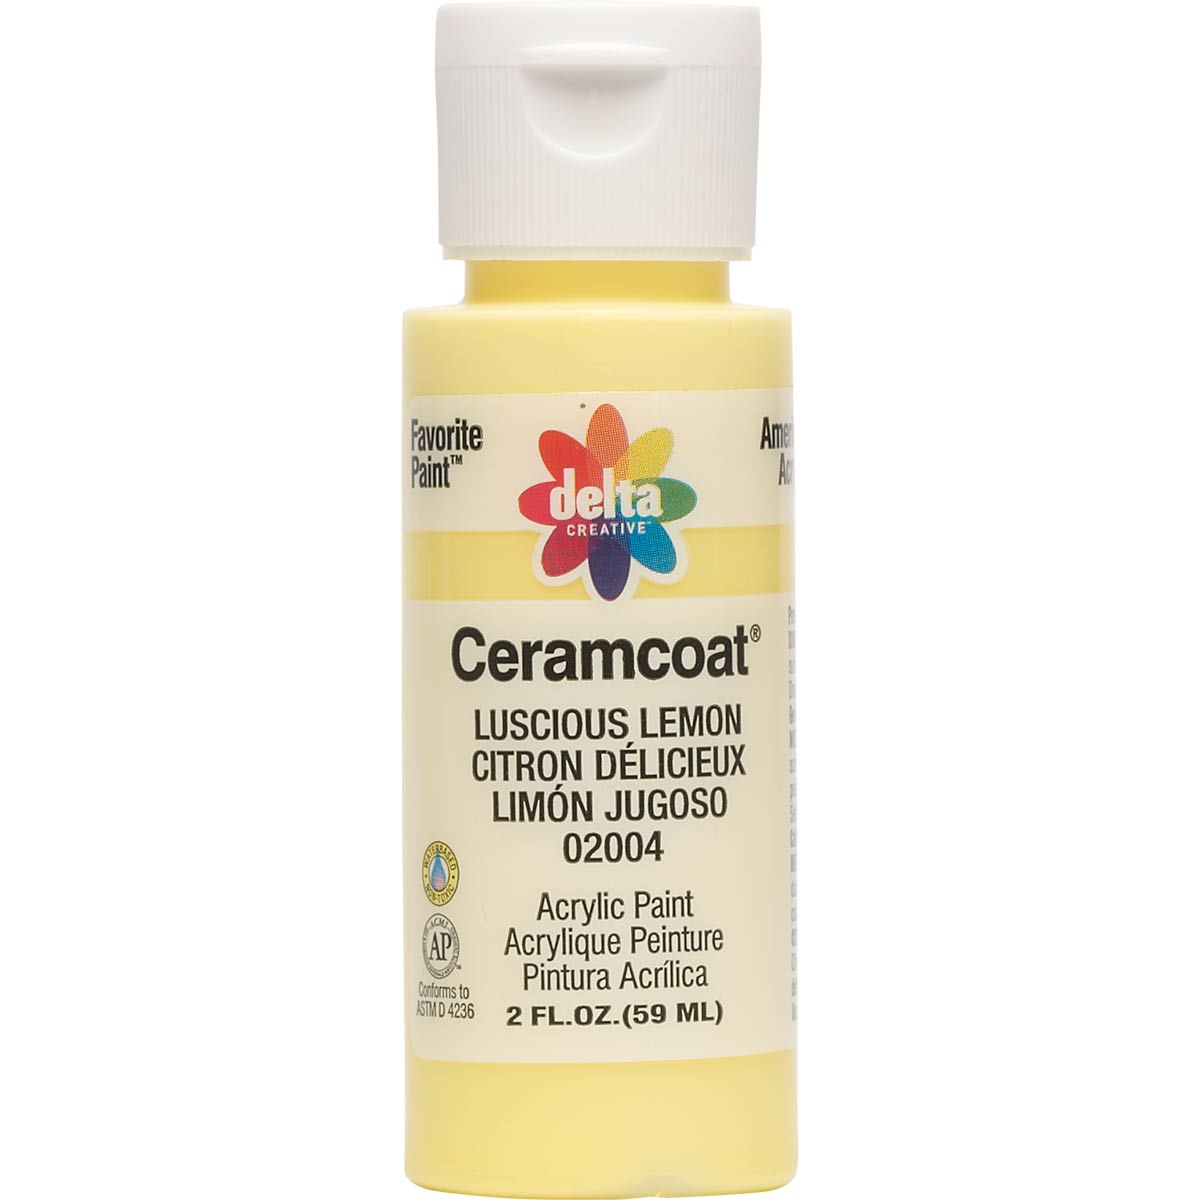 Delta Ceramcoat ® Acrylic Paint - Luscious Lemon, 2 oz. - 020040202W